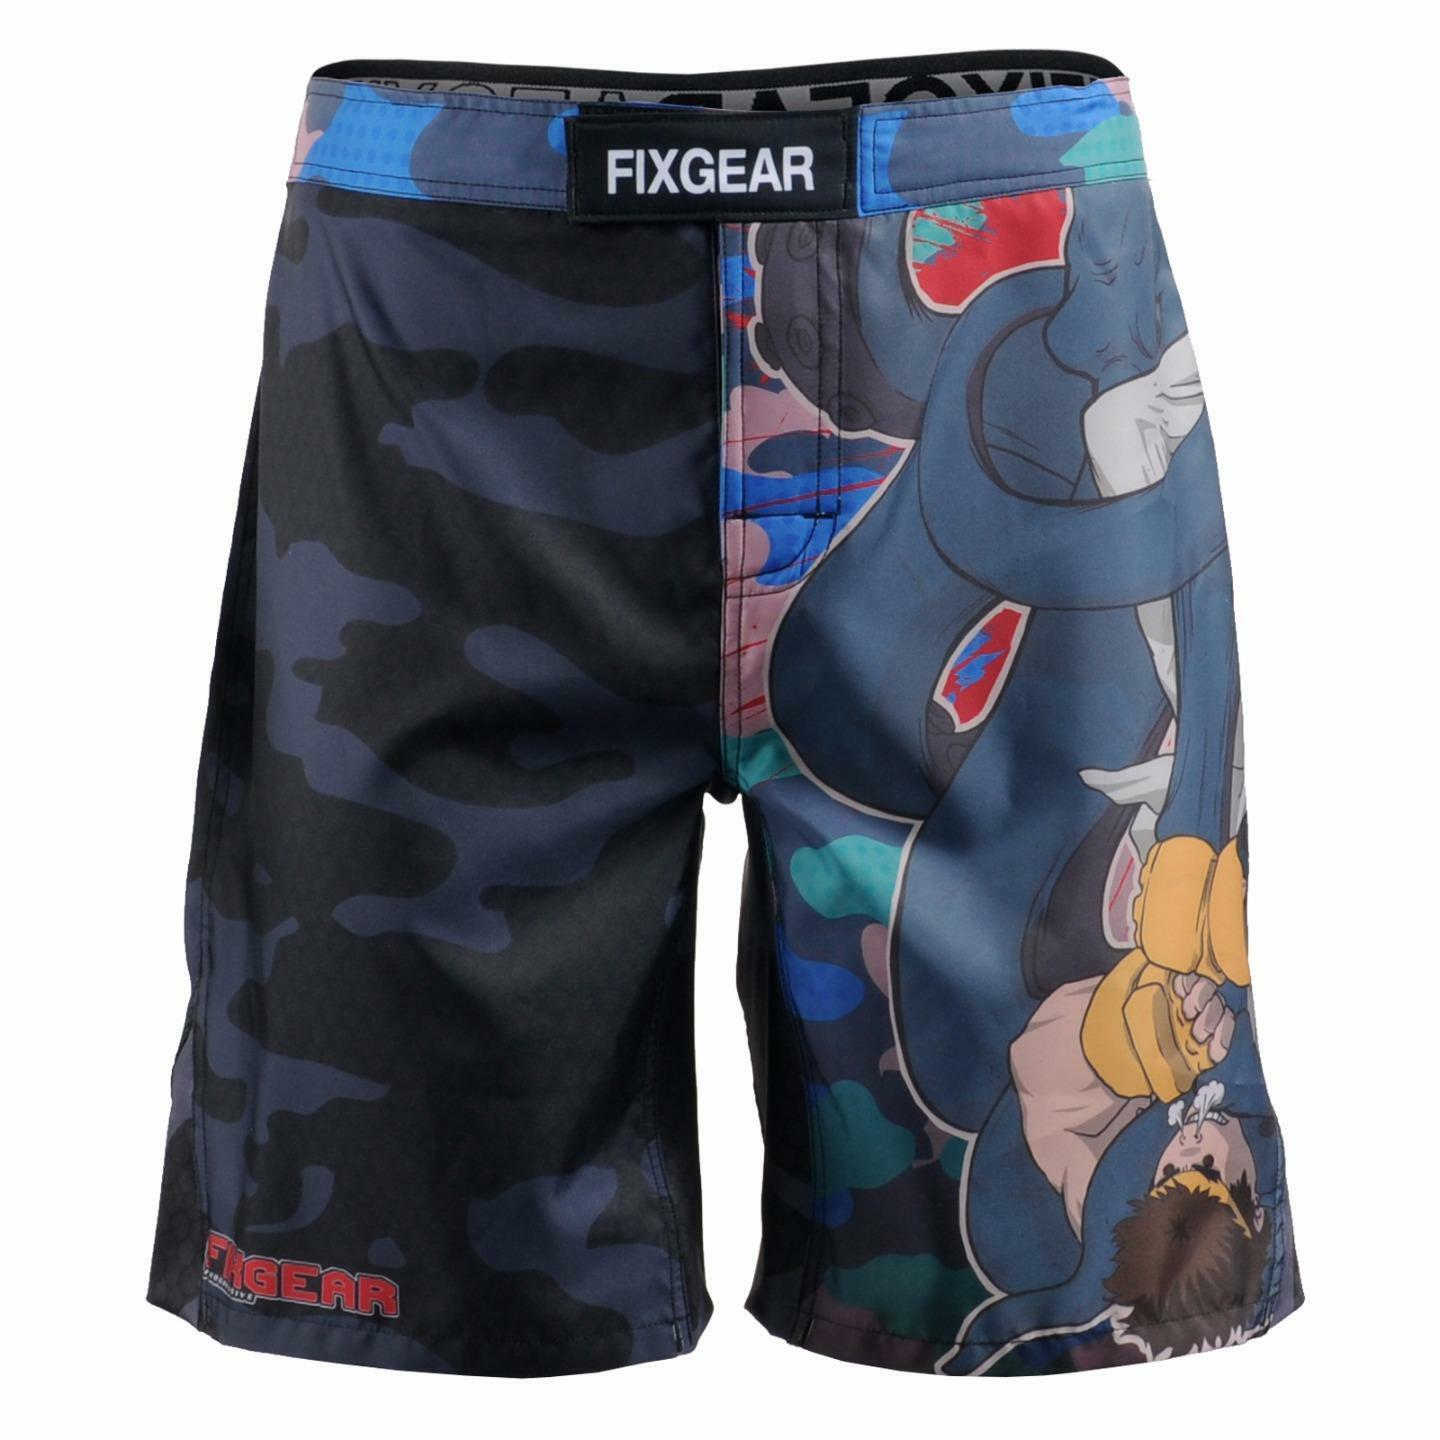 FIXGEAR FMS-H5 MMA Graphic Shorts for Men Workout Training Fitness